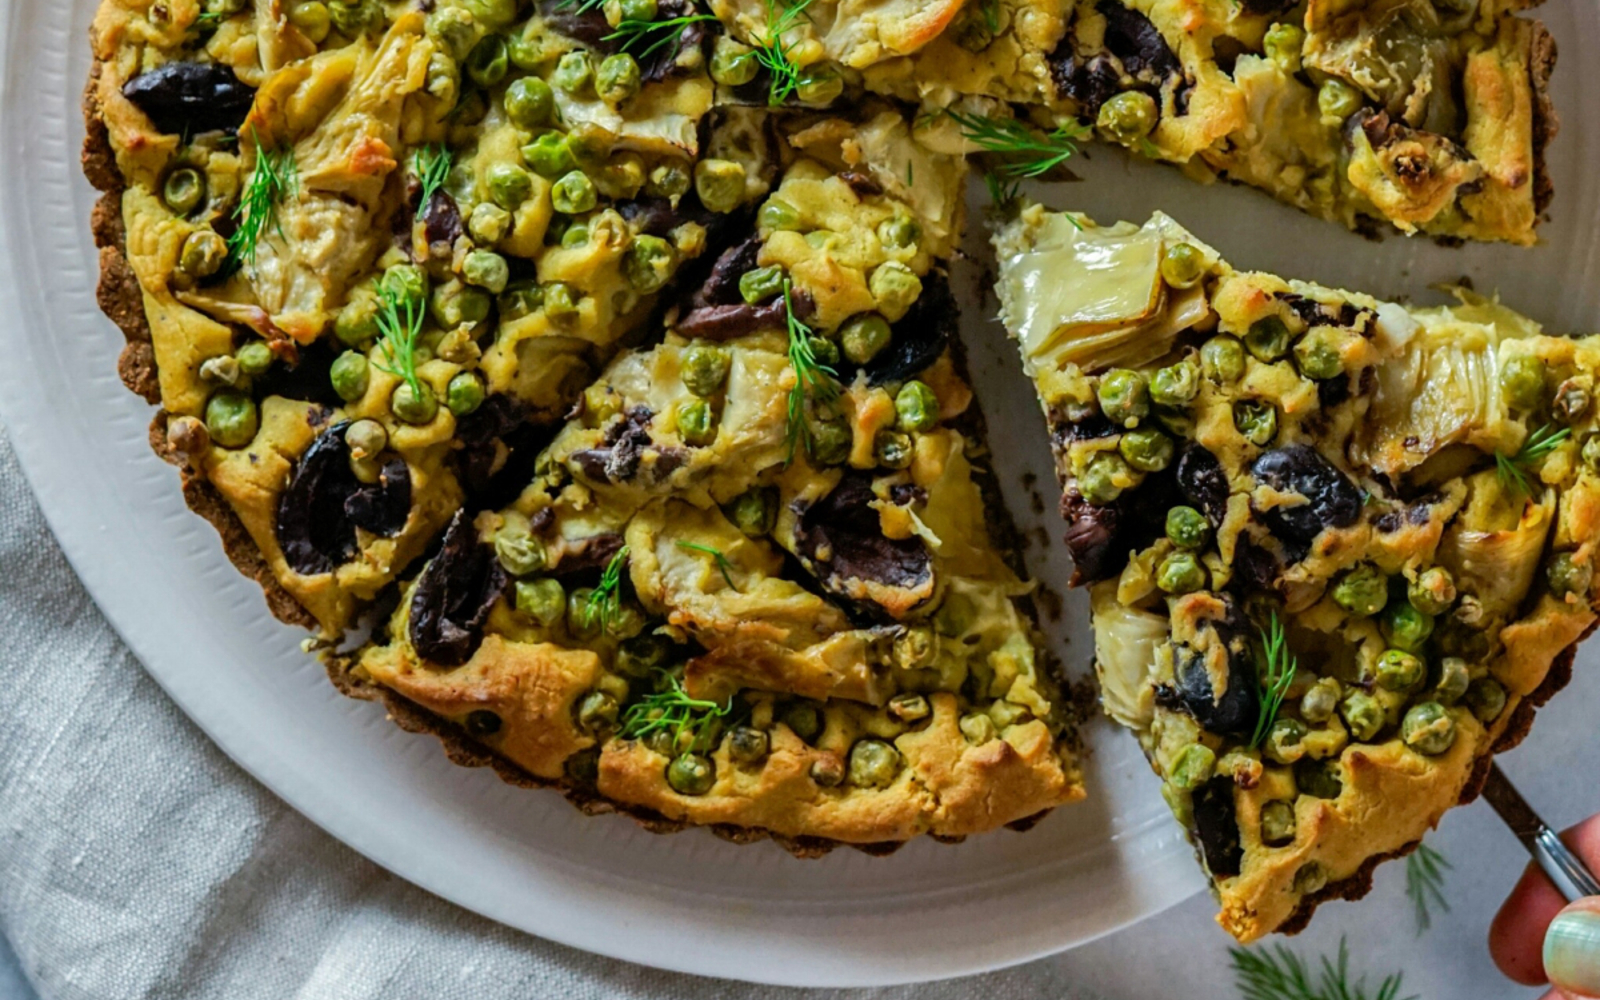 Vegan Olive and Artichoke Tart With Buckwheat Crust with kalamata olives